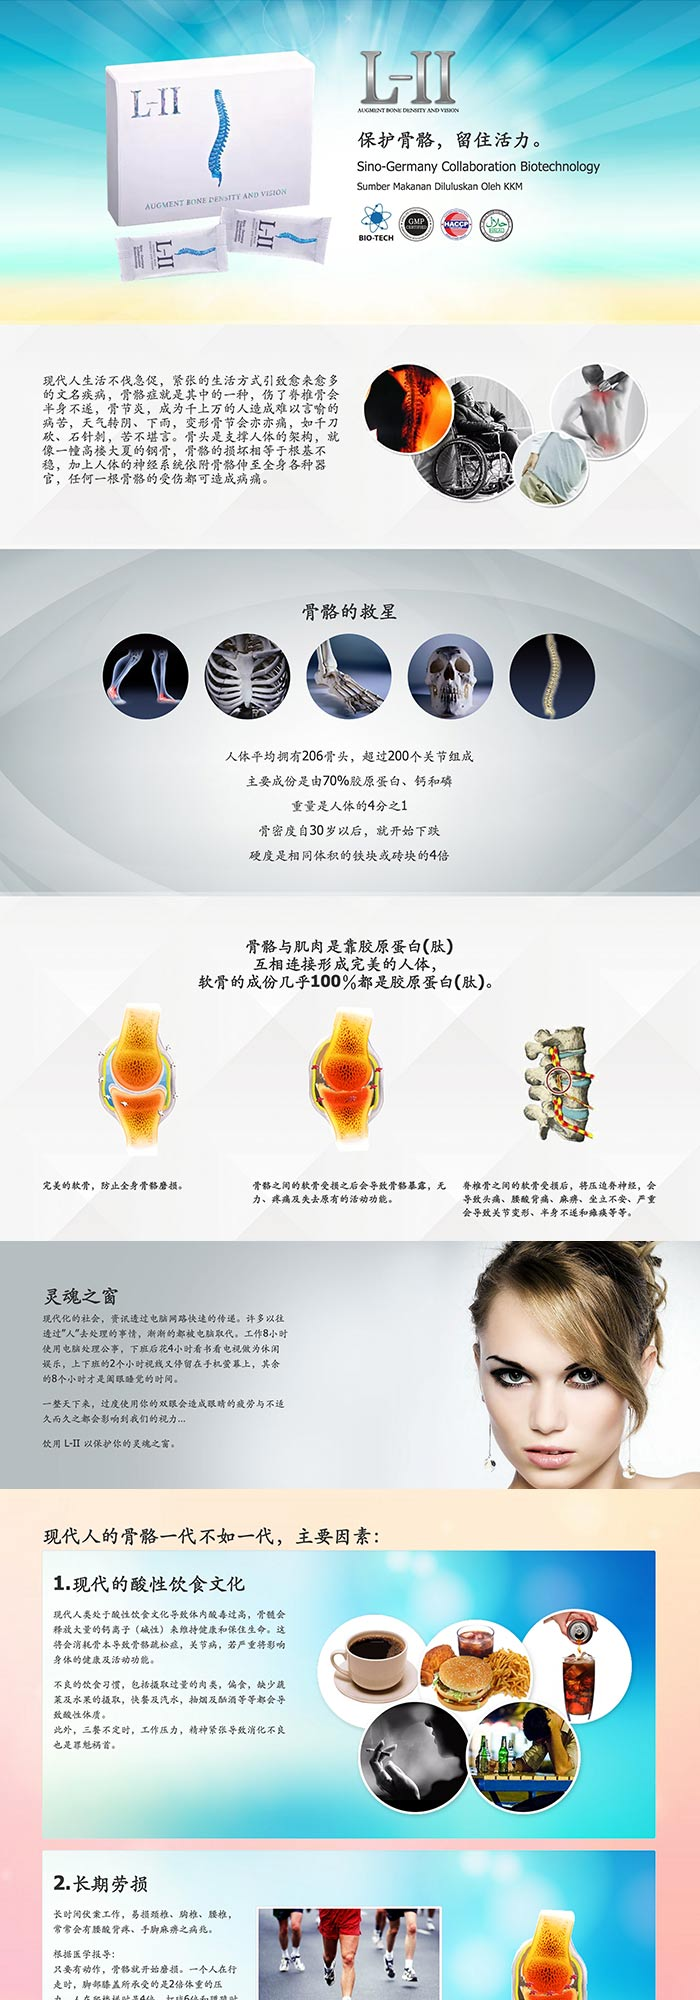 L-II Product Webpage Design (Chinese)